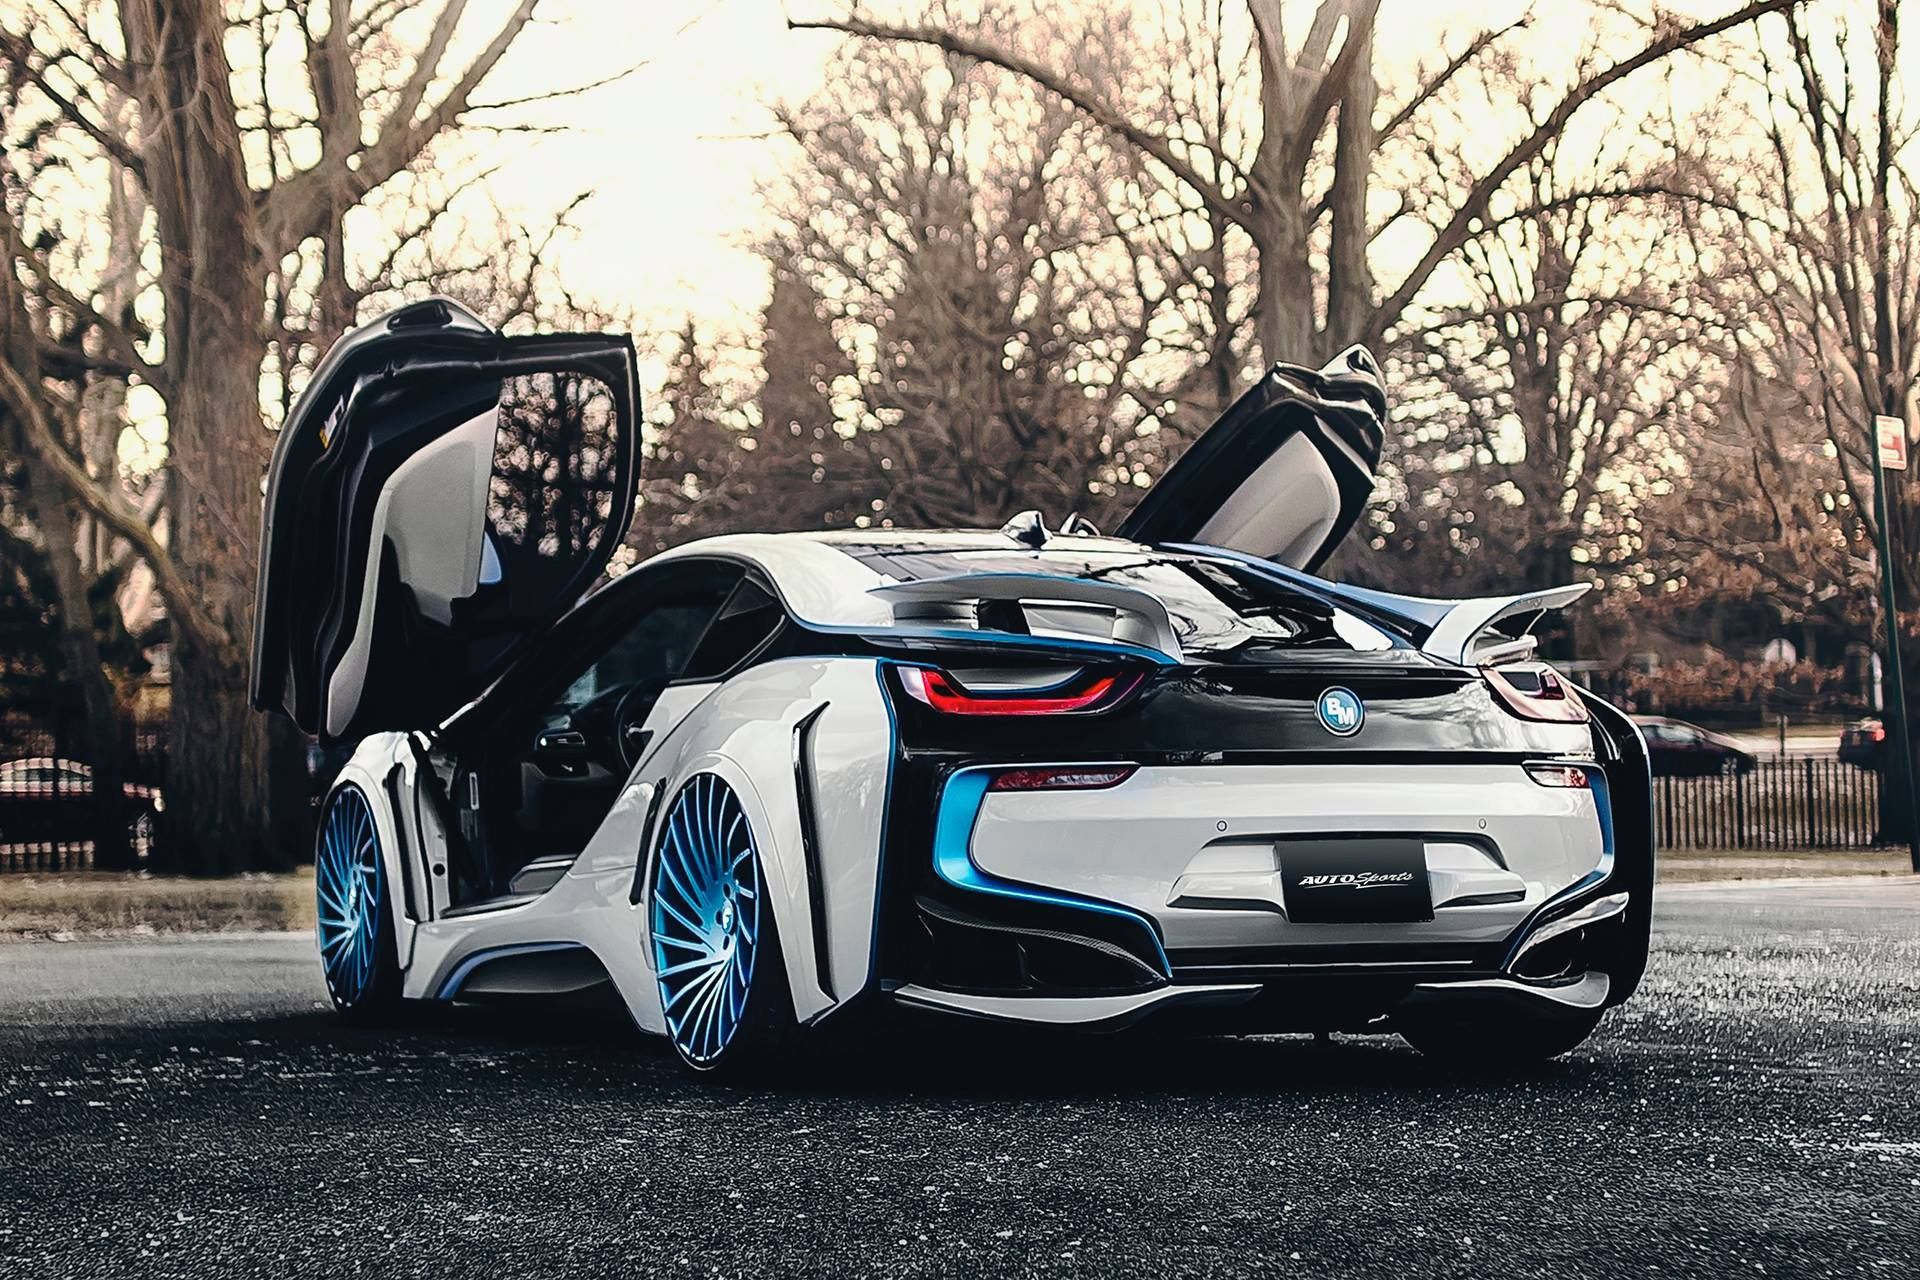 Spaceship In The Form Of The Car Custom White Bmw I8 With Blue Accents Bmw Dream Cars Bmw Bmw I8